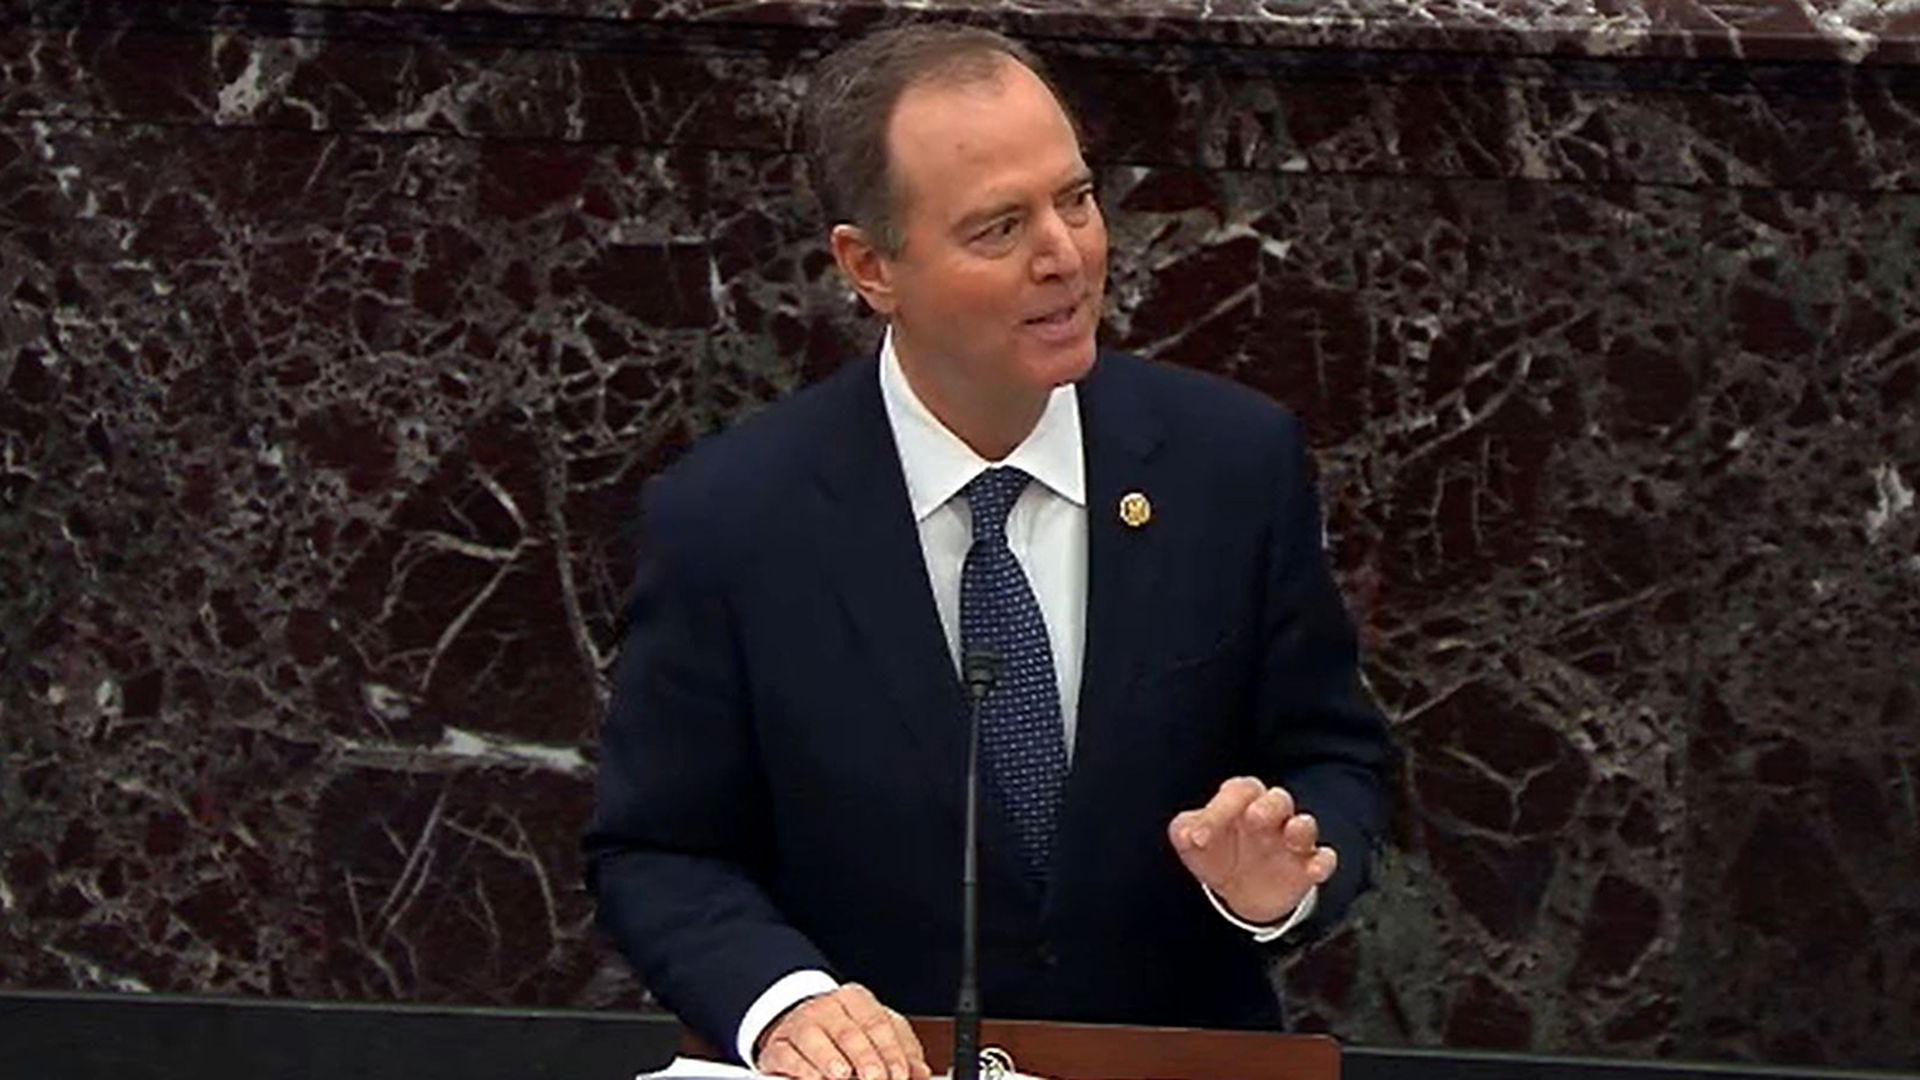 """Adam Schiff: """"The president's misconduct cannot be decided at the ballot box"""""""